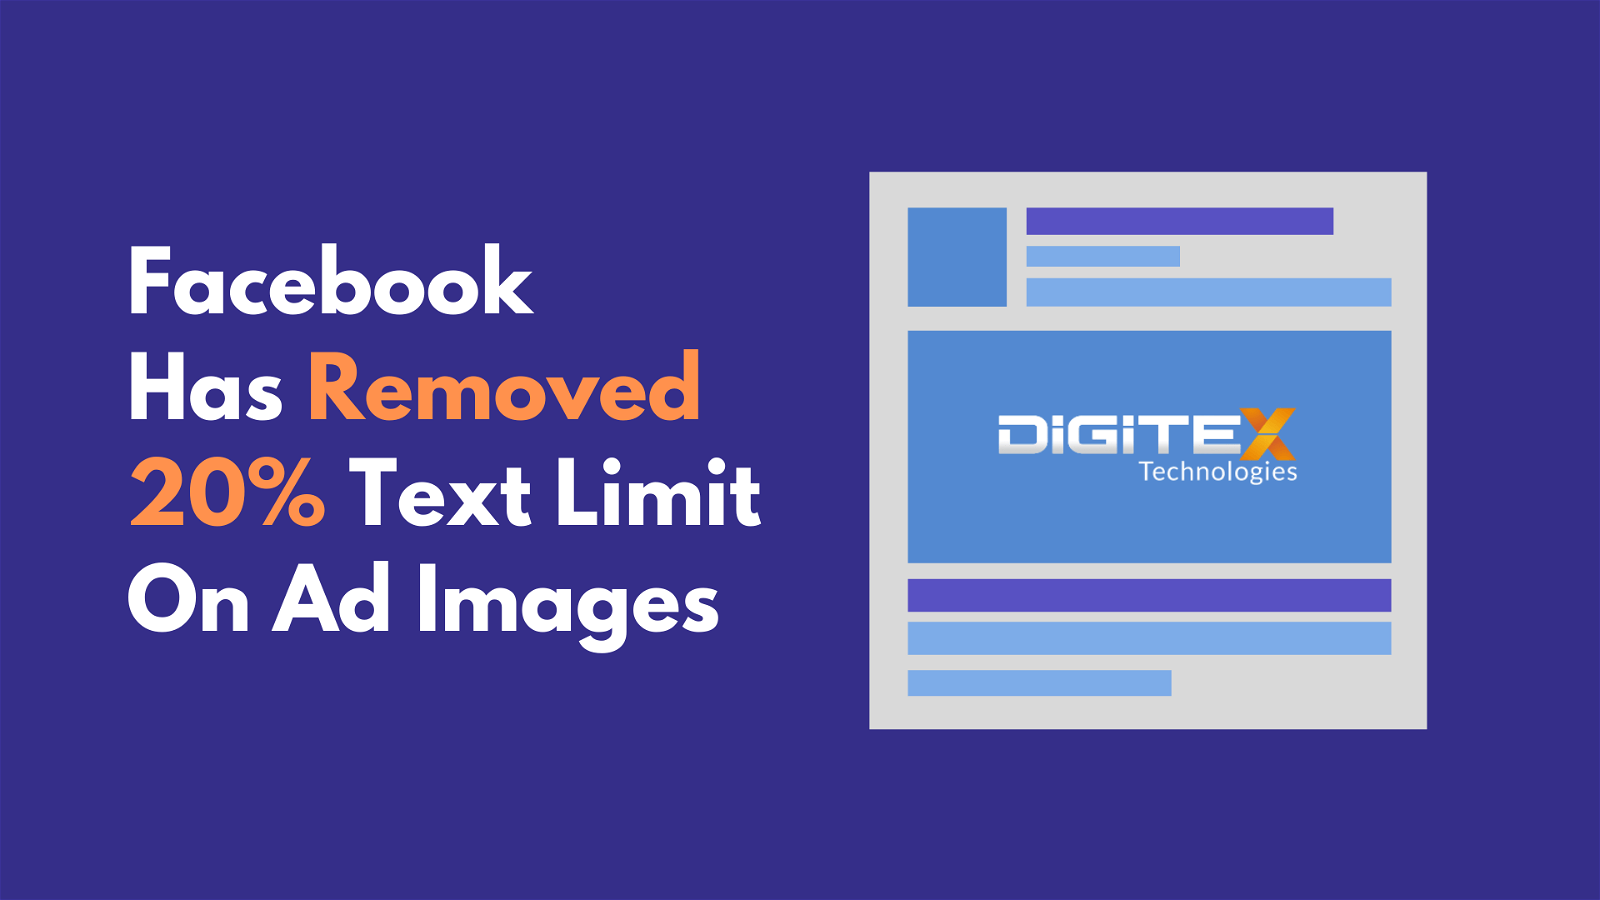 Big Update: Facebook Has Removed 20% Text Limit On Ad Images